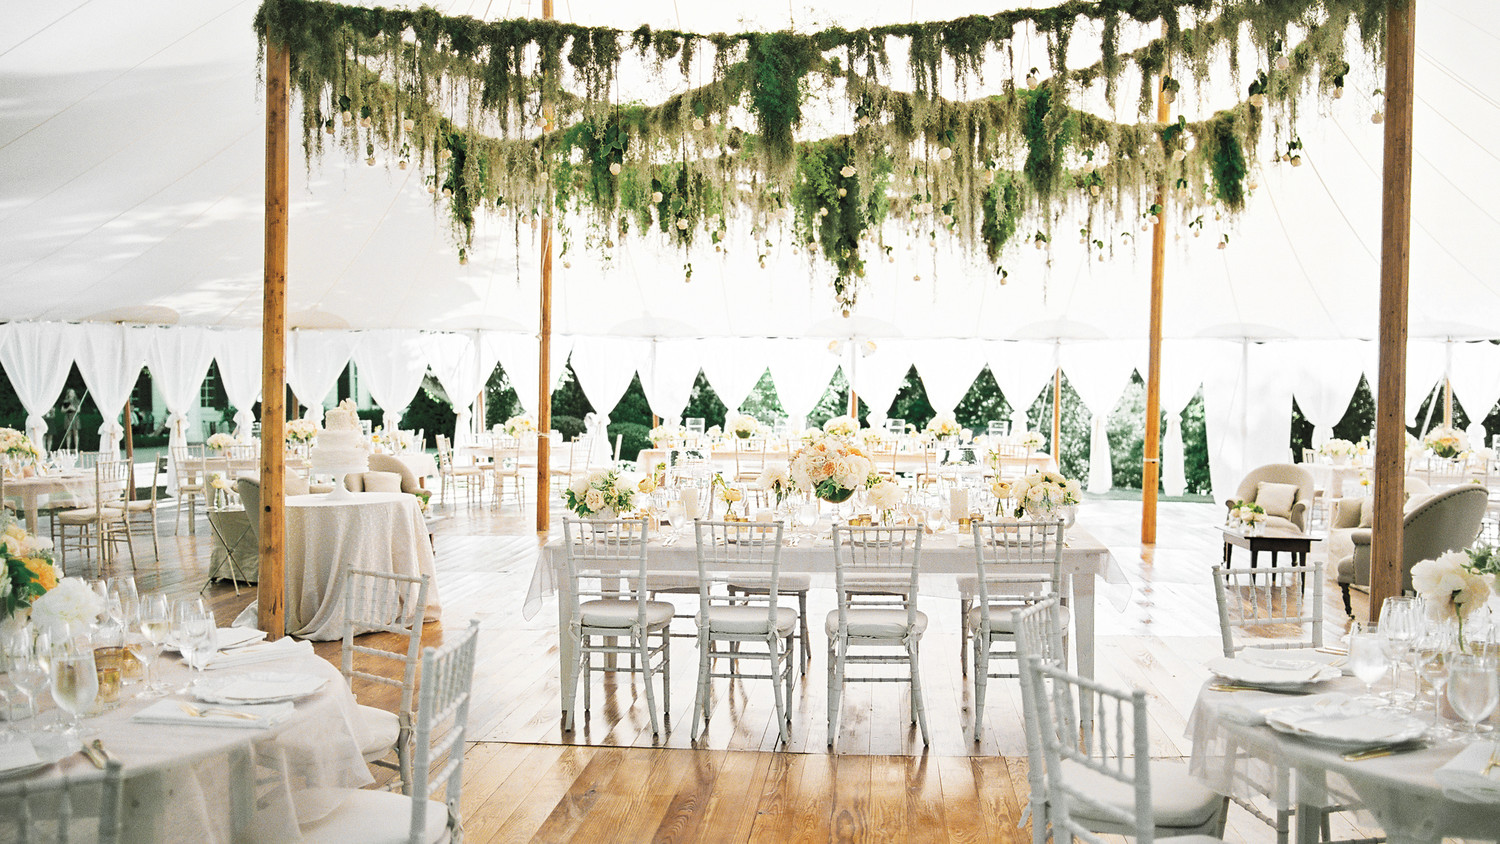 28 tent decorating ideas that will upgrade your wedding reception 28 tent decorating ideas that will upgrade your wedding reception martha stewart weddings junglespirit Images